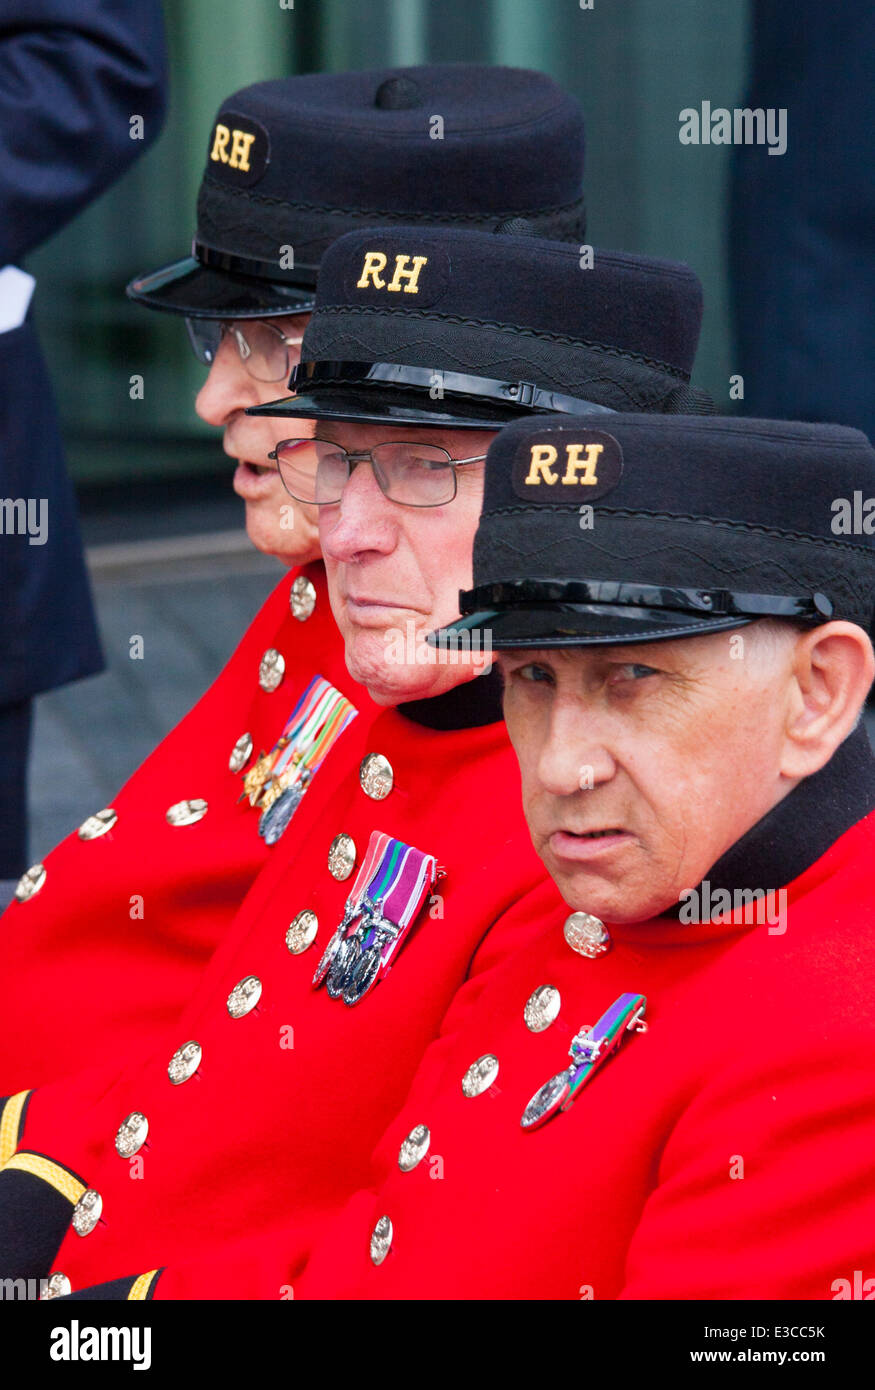 London, UK. 23rd June, 2014. Chelsea Pensioners are  among those attending as members and veterans of the military - Stock Image